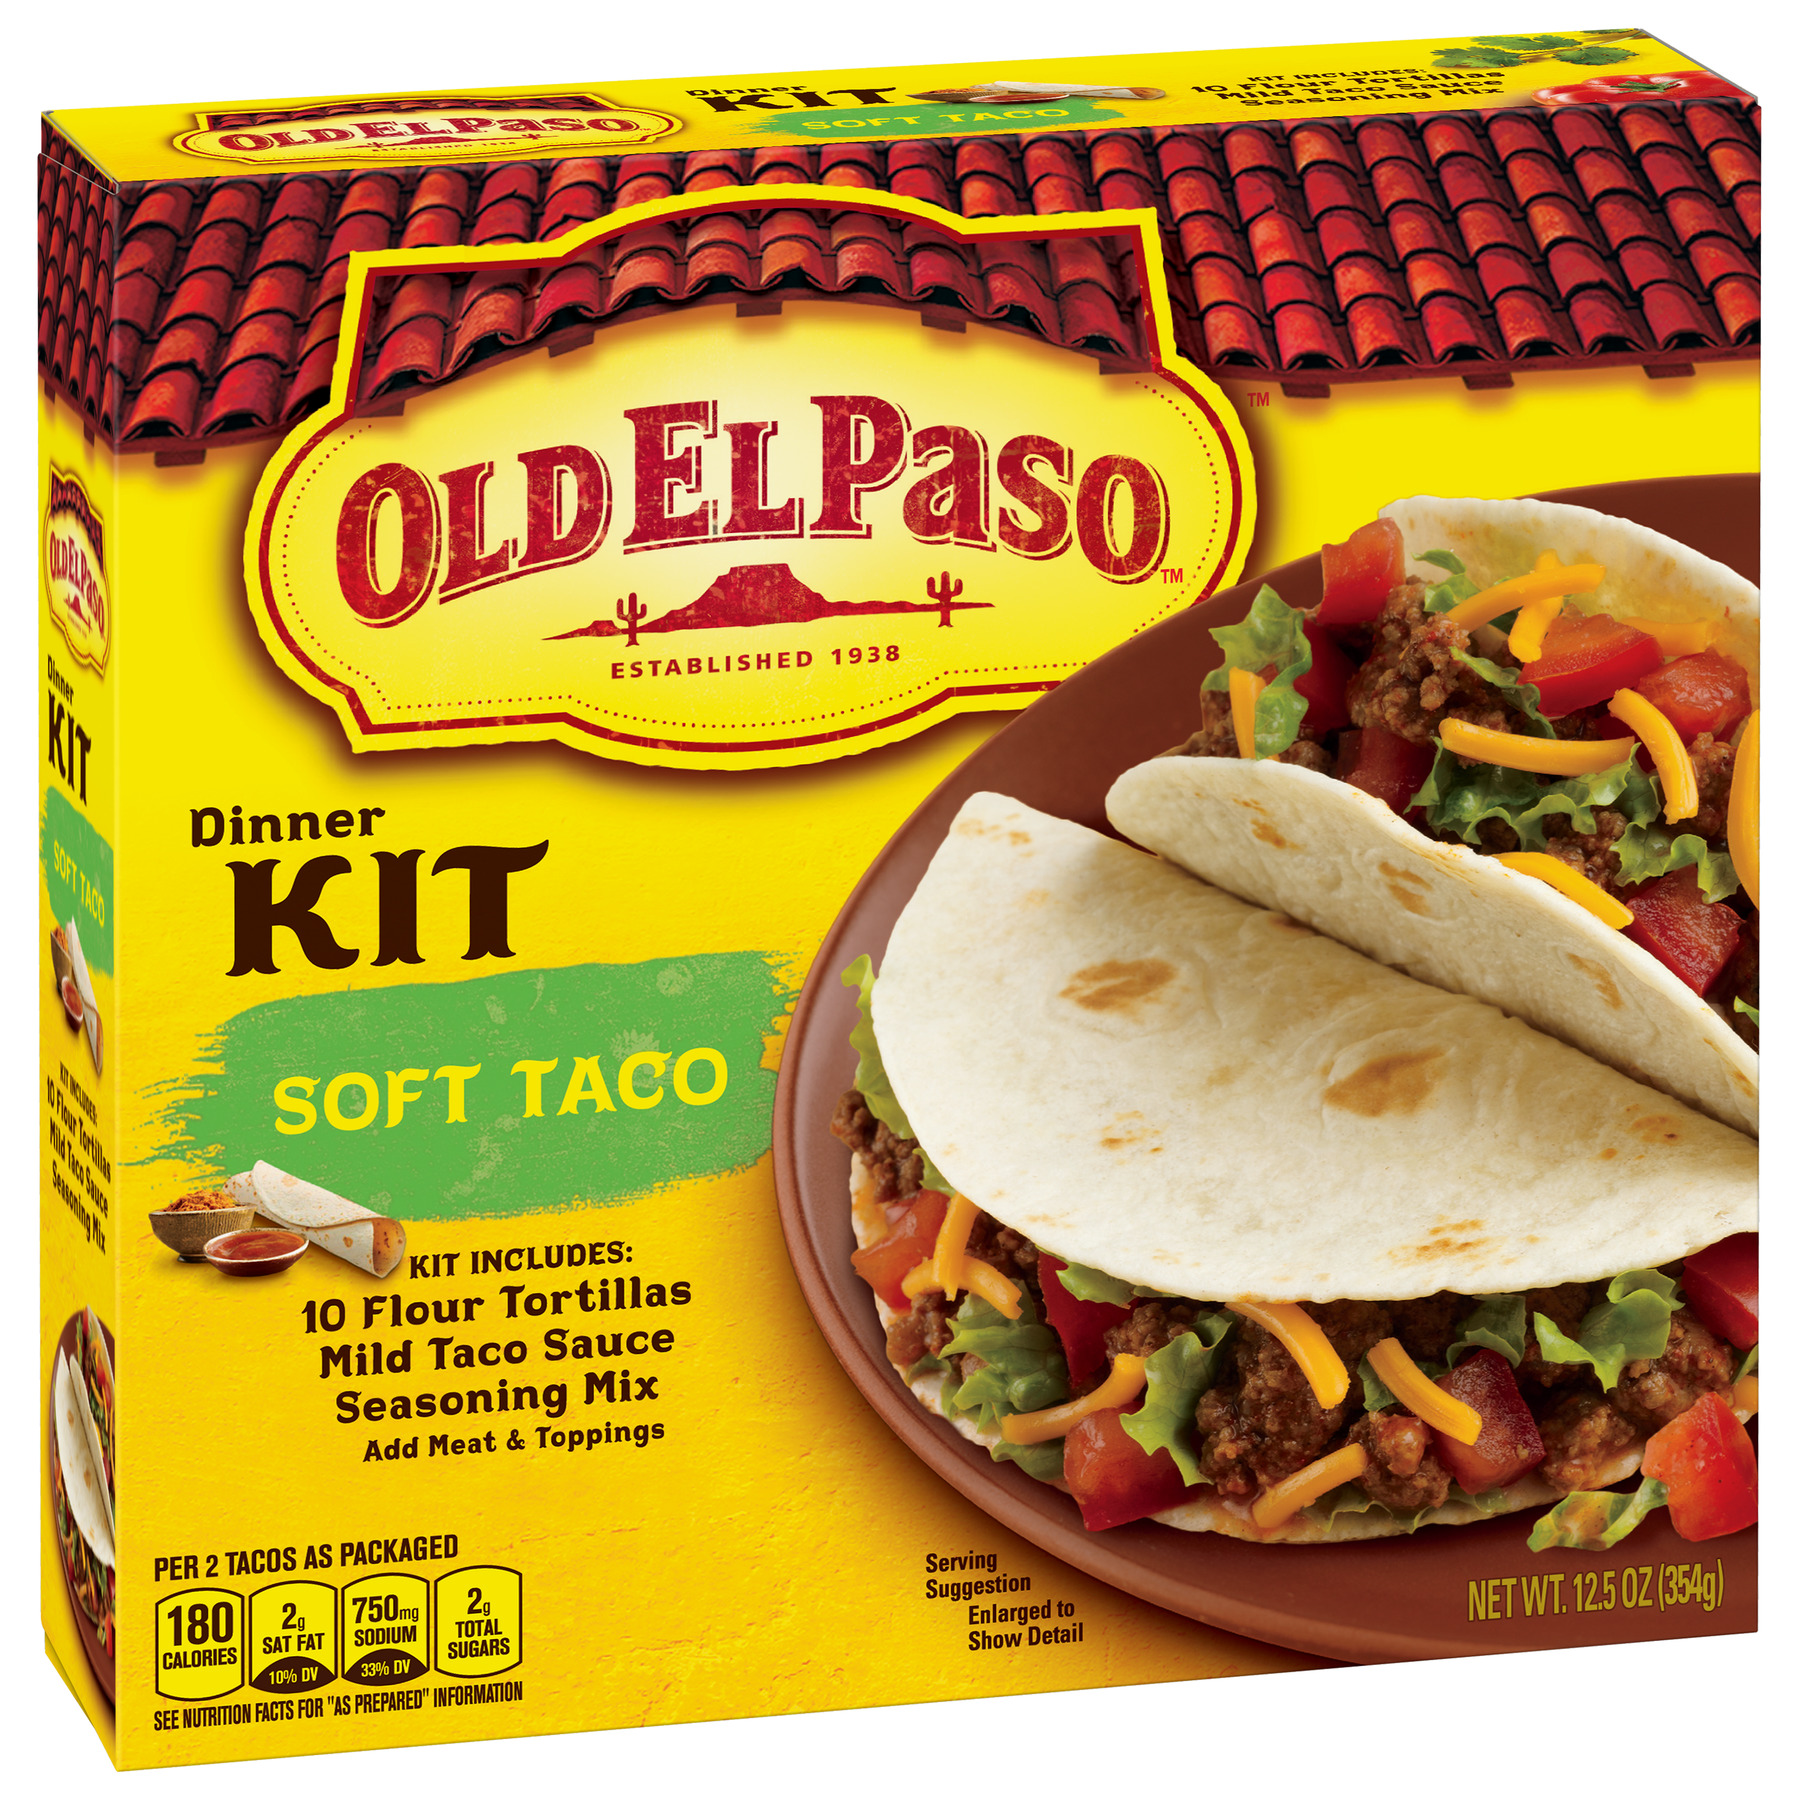 Old El Paso Soft Taco Dinner Kit, 12.5 oz